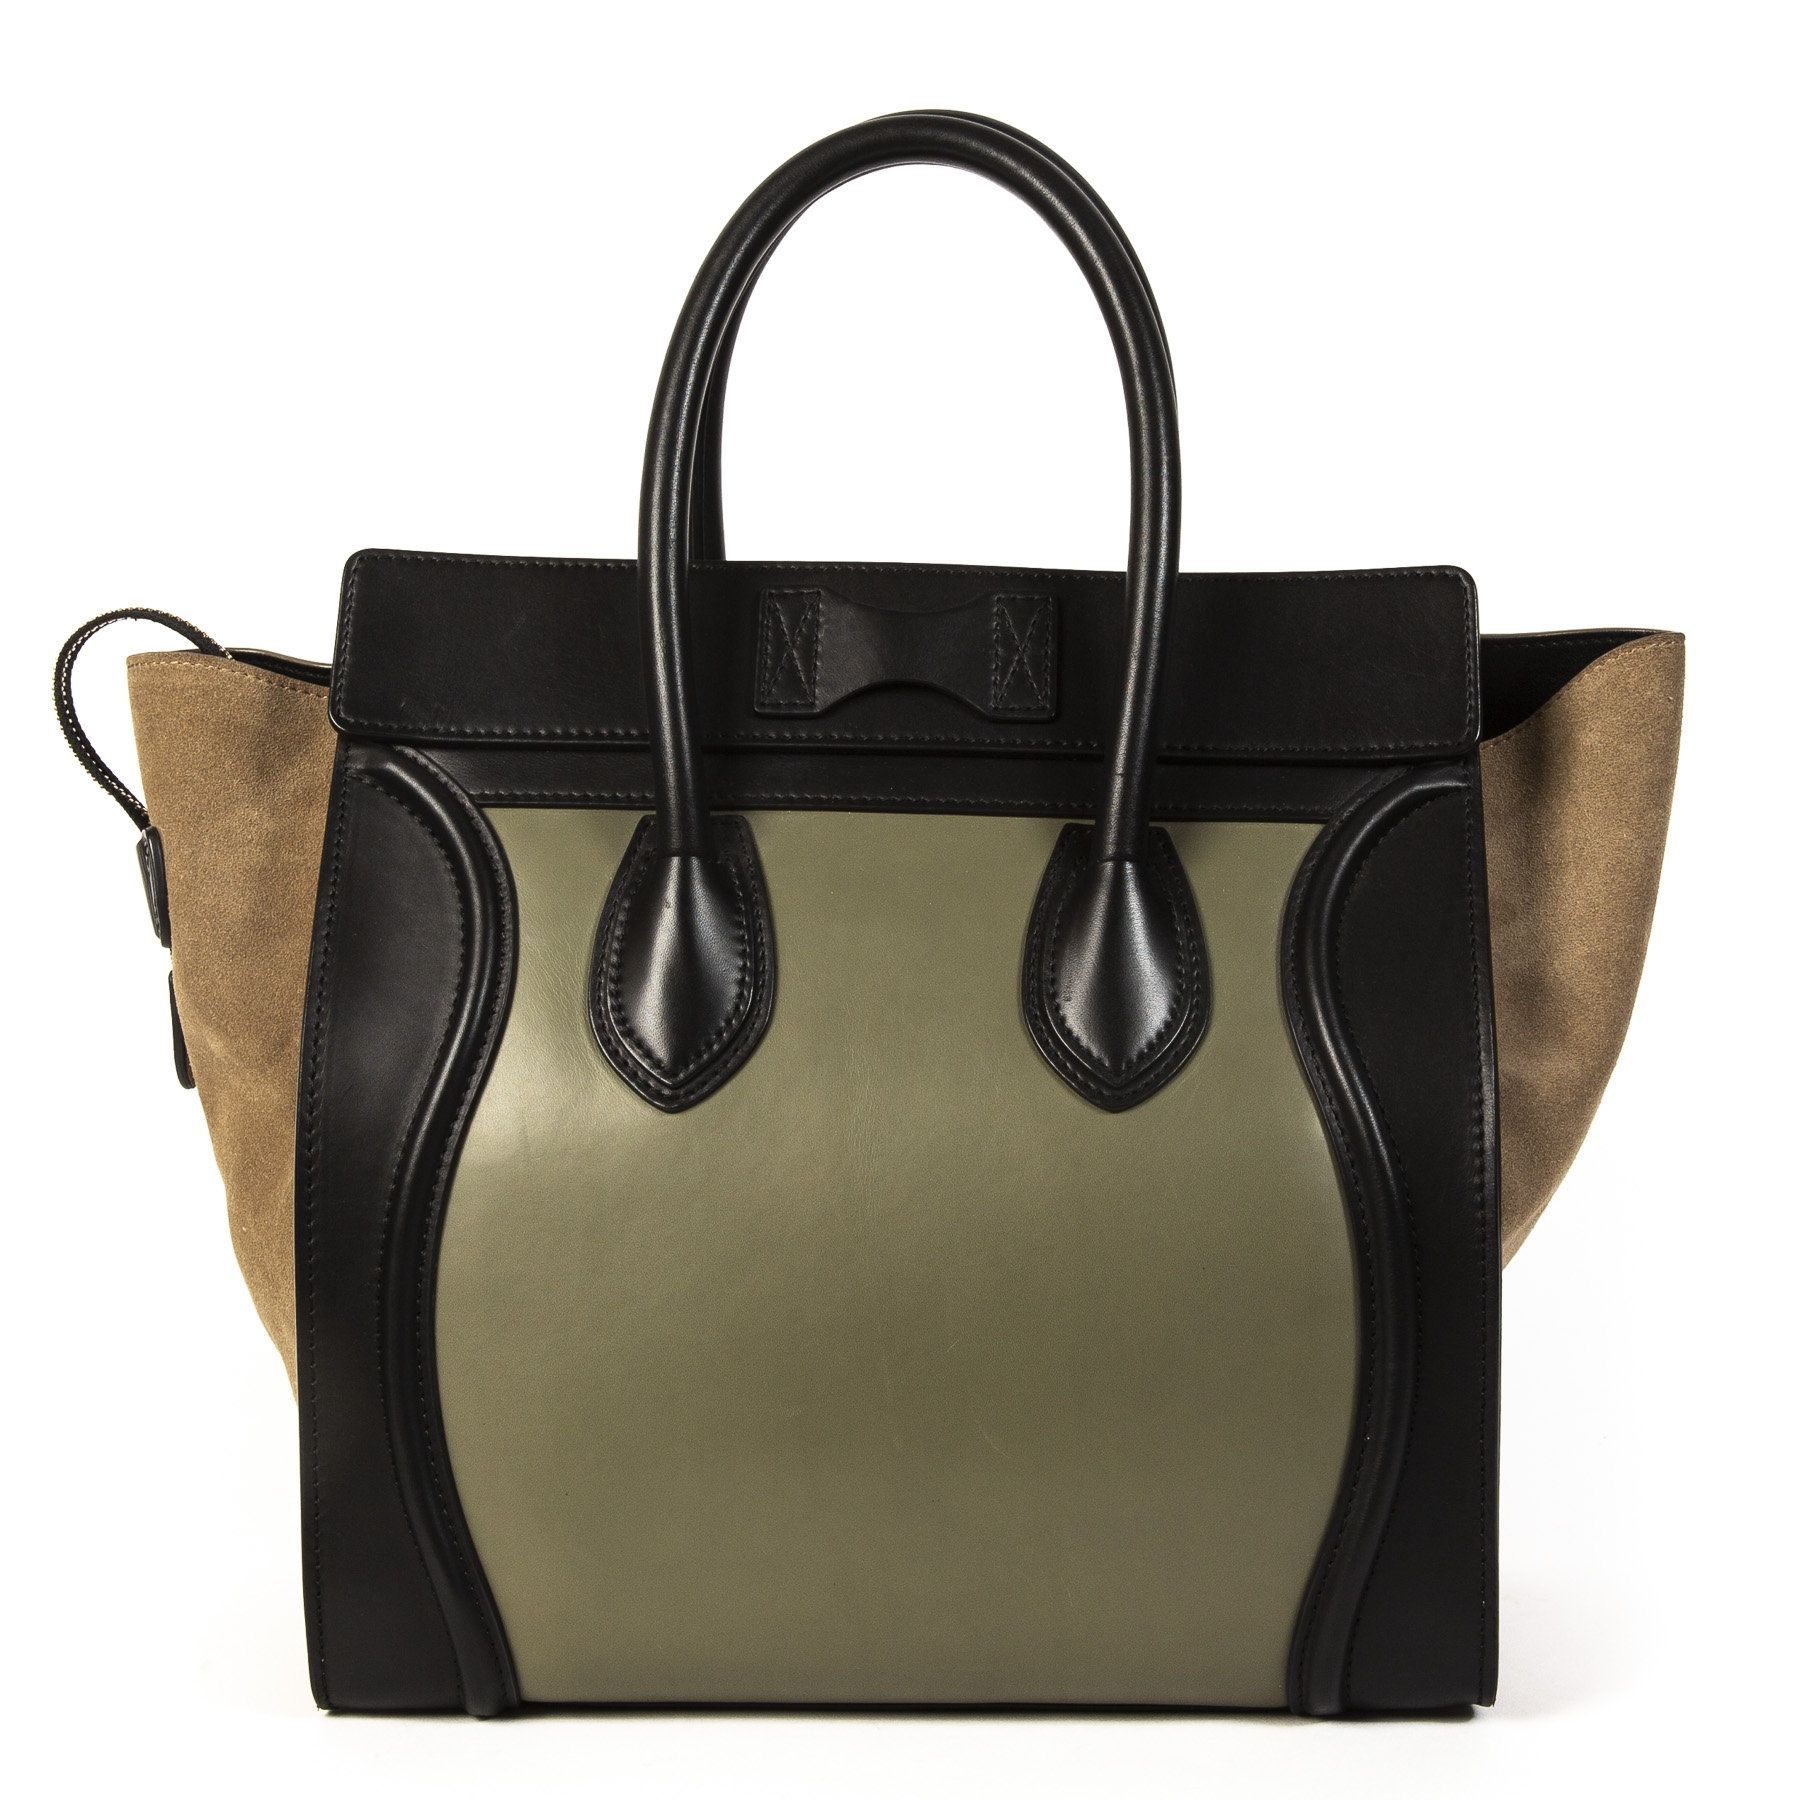 Celine Luggage Black Green and Beige Tricolor Handbag